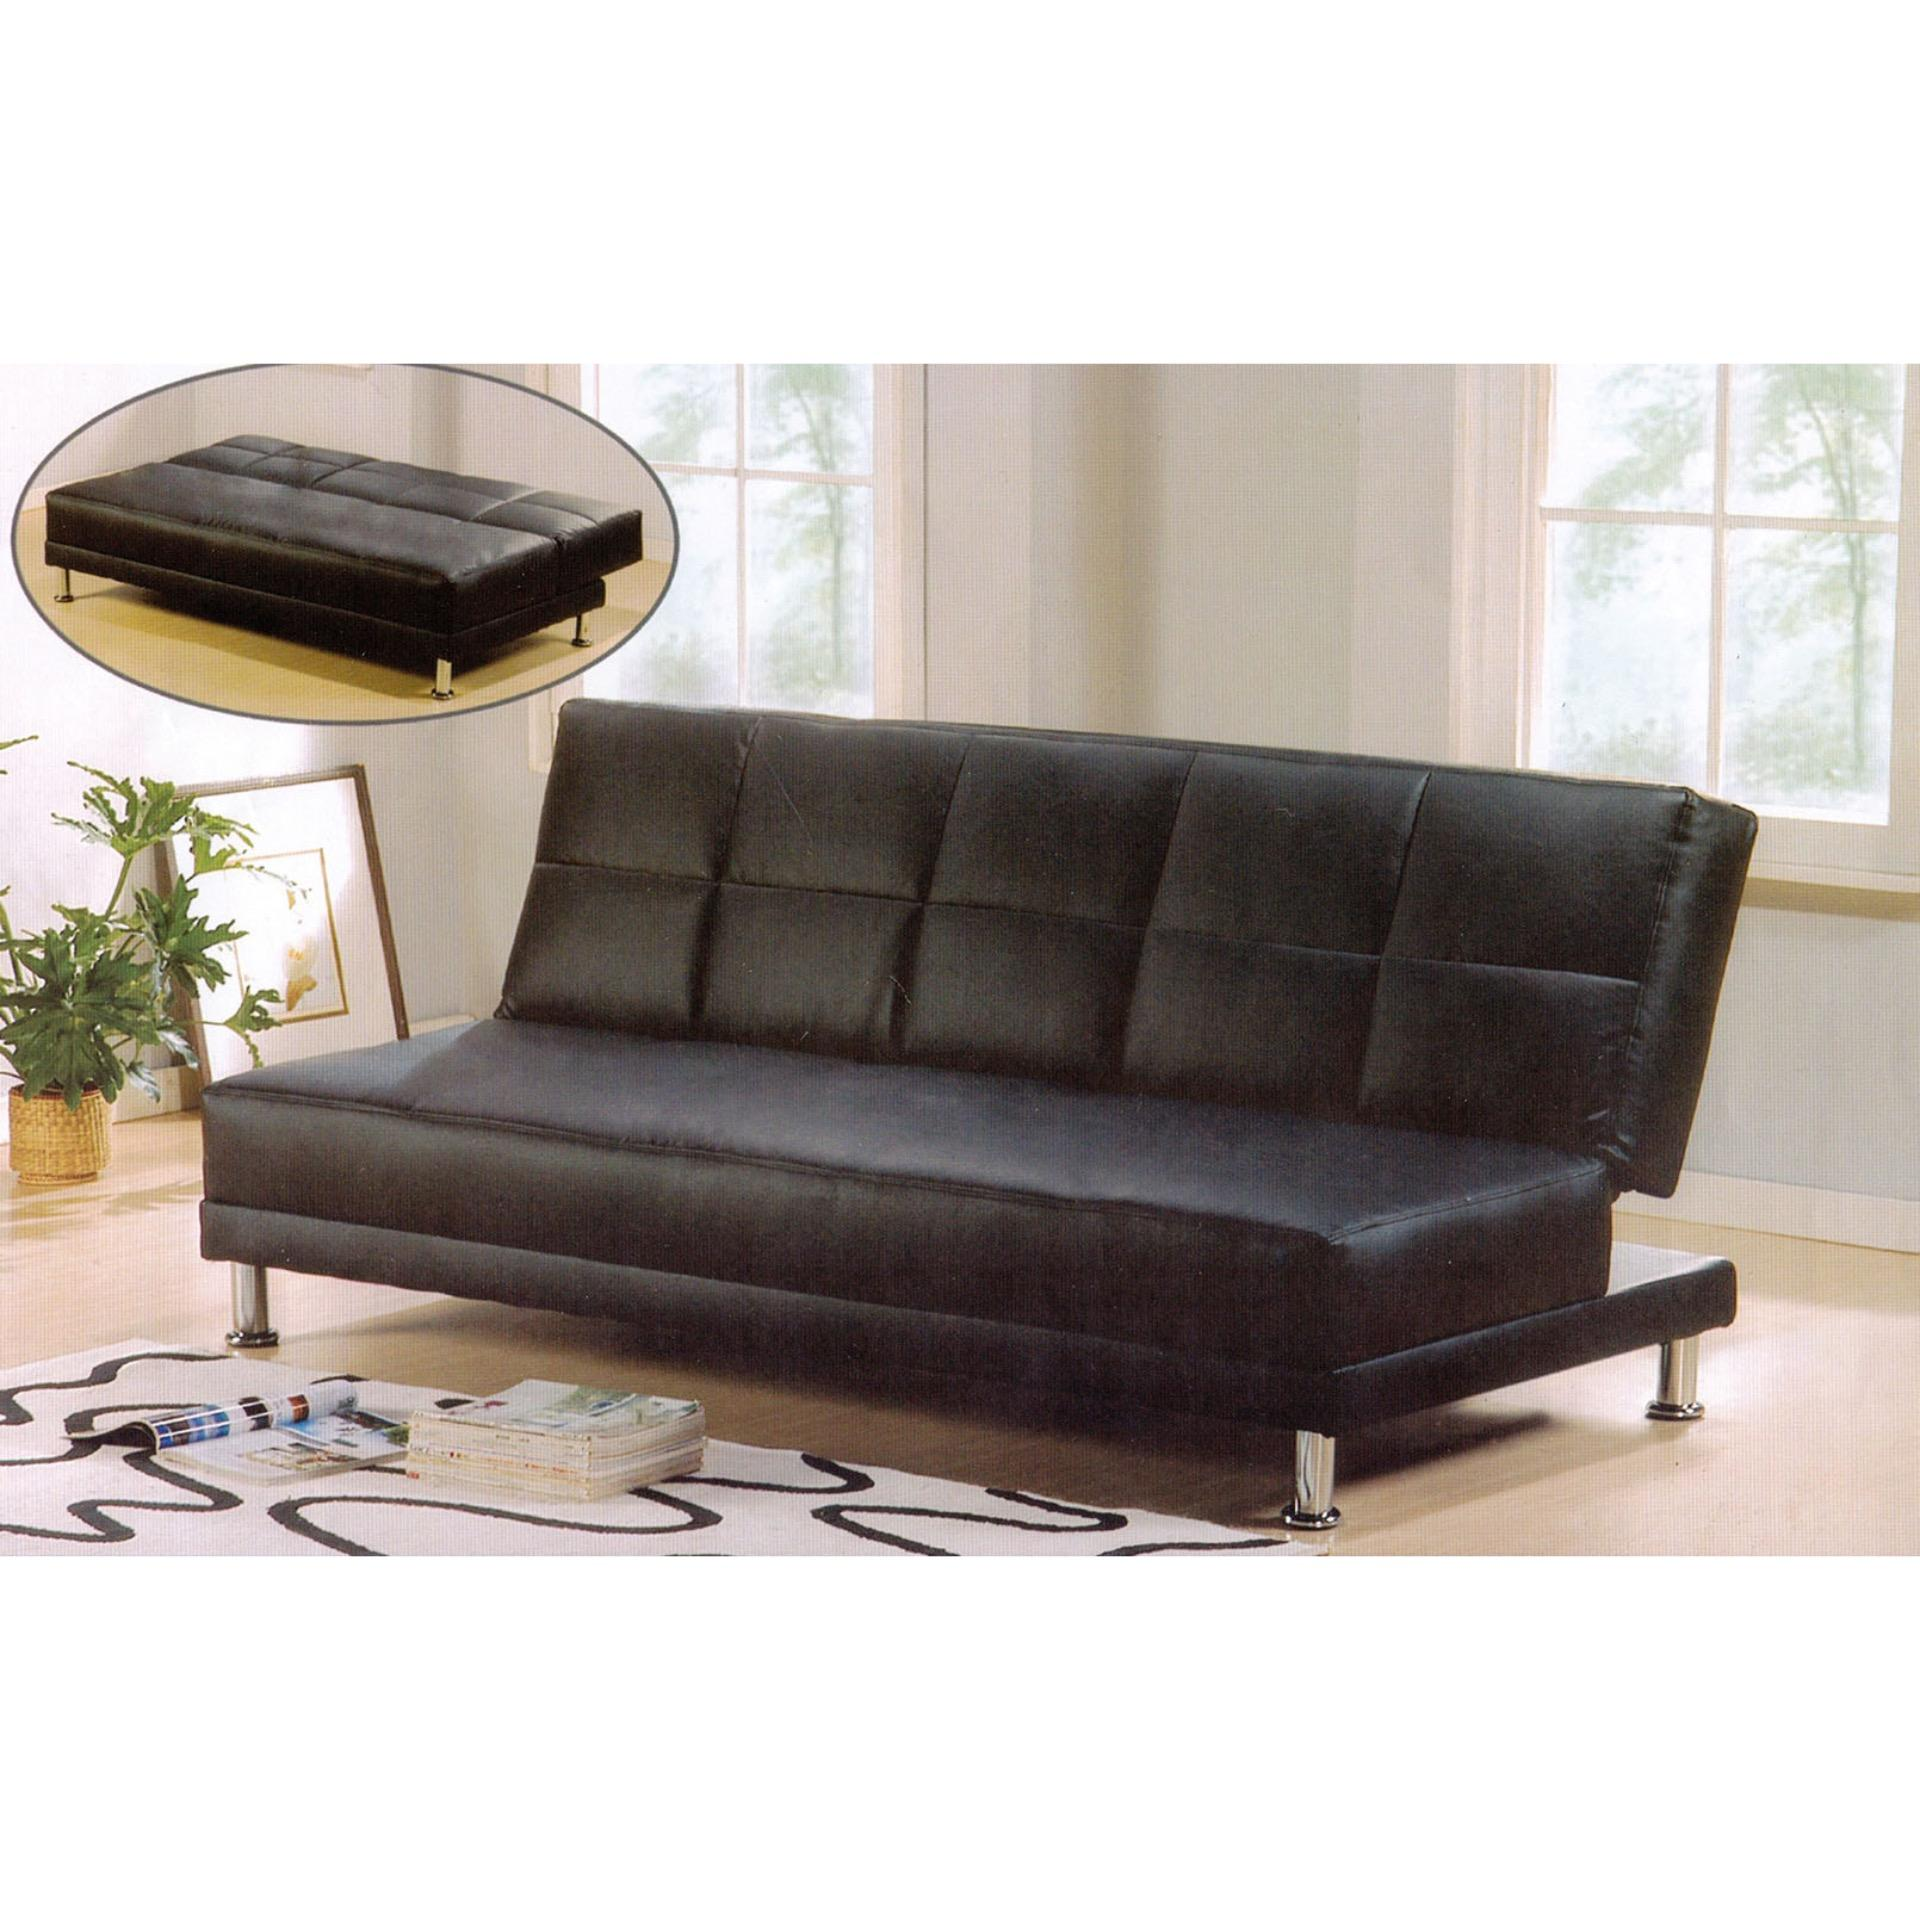 Black Good Leather Sofa Bed Room Sofa Bed Office Sofa Bed ...